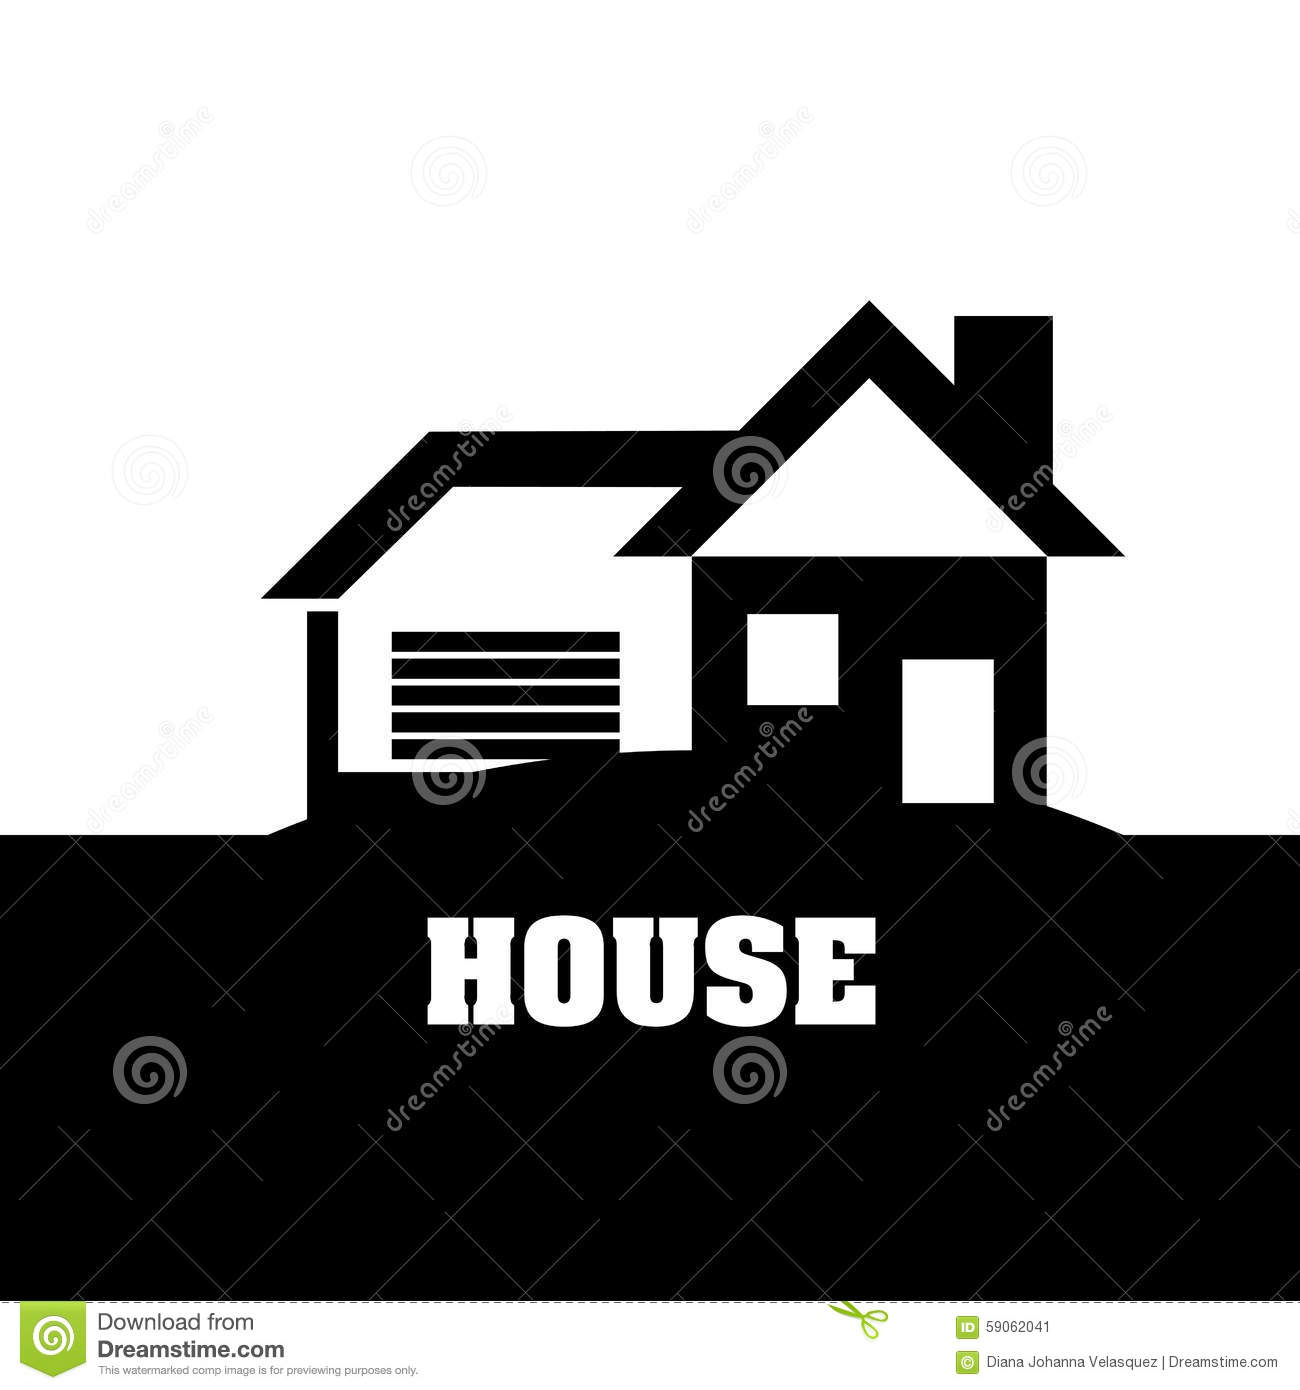 House design stock vector image 59062041 for Graphic design house